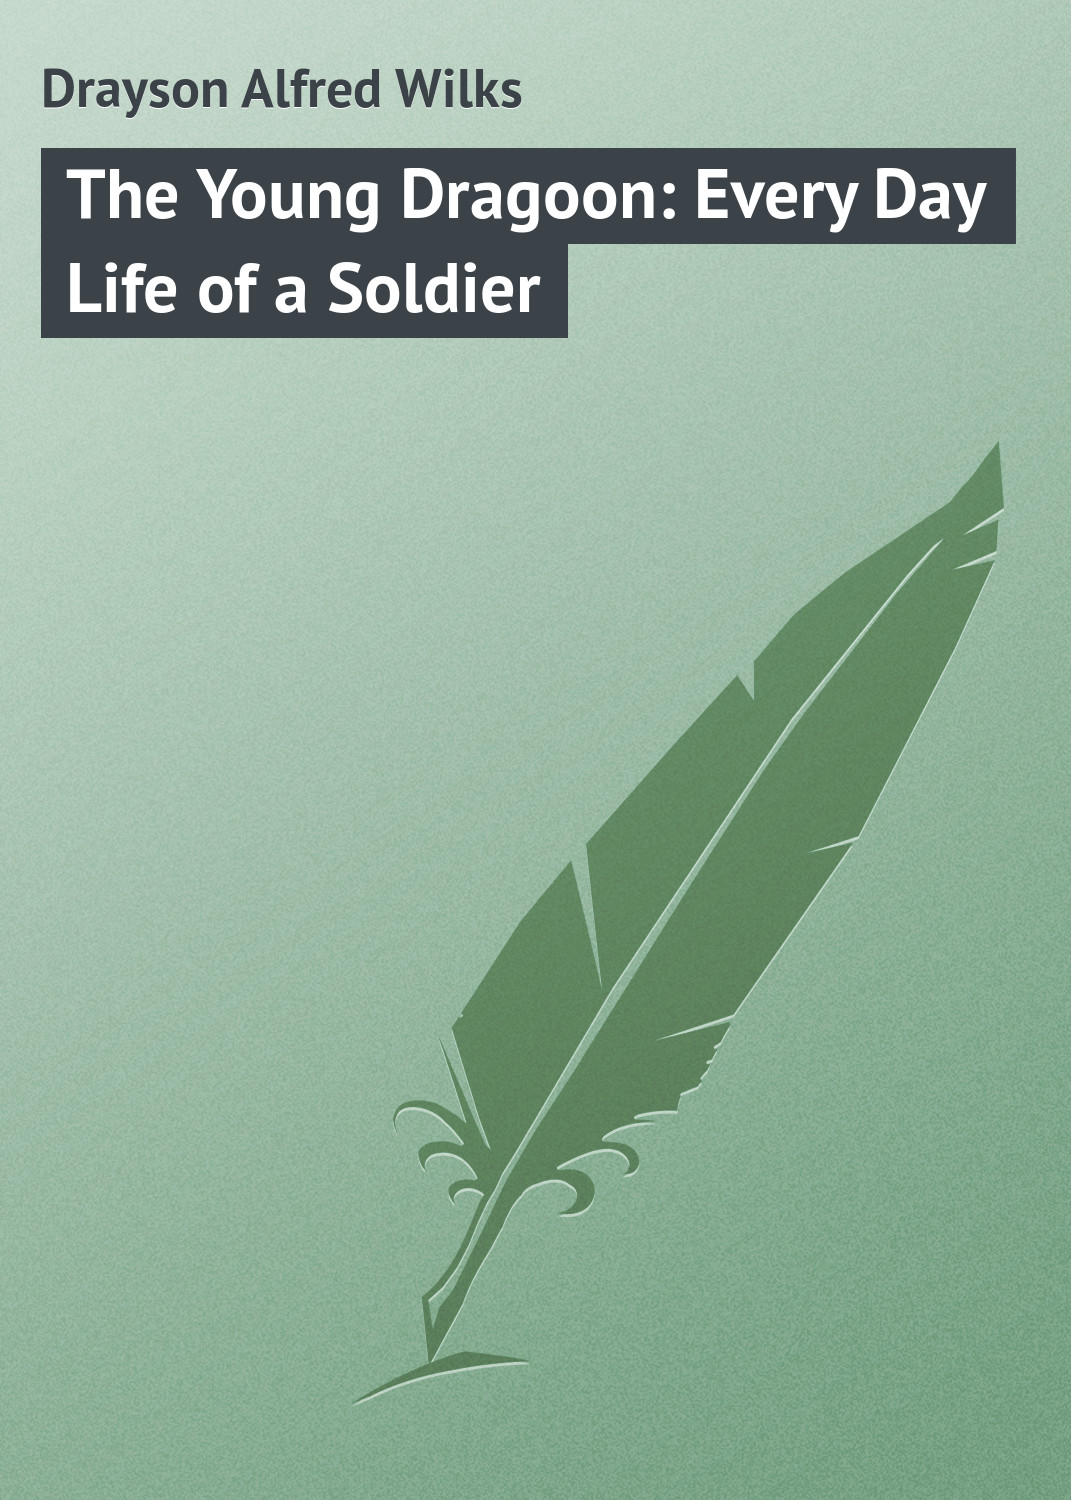 цены Drayson Alfred Wilks The Young Dragoon: Every Day Life of a Soldier